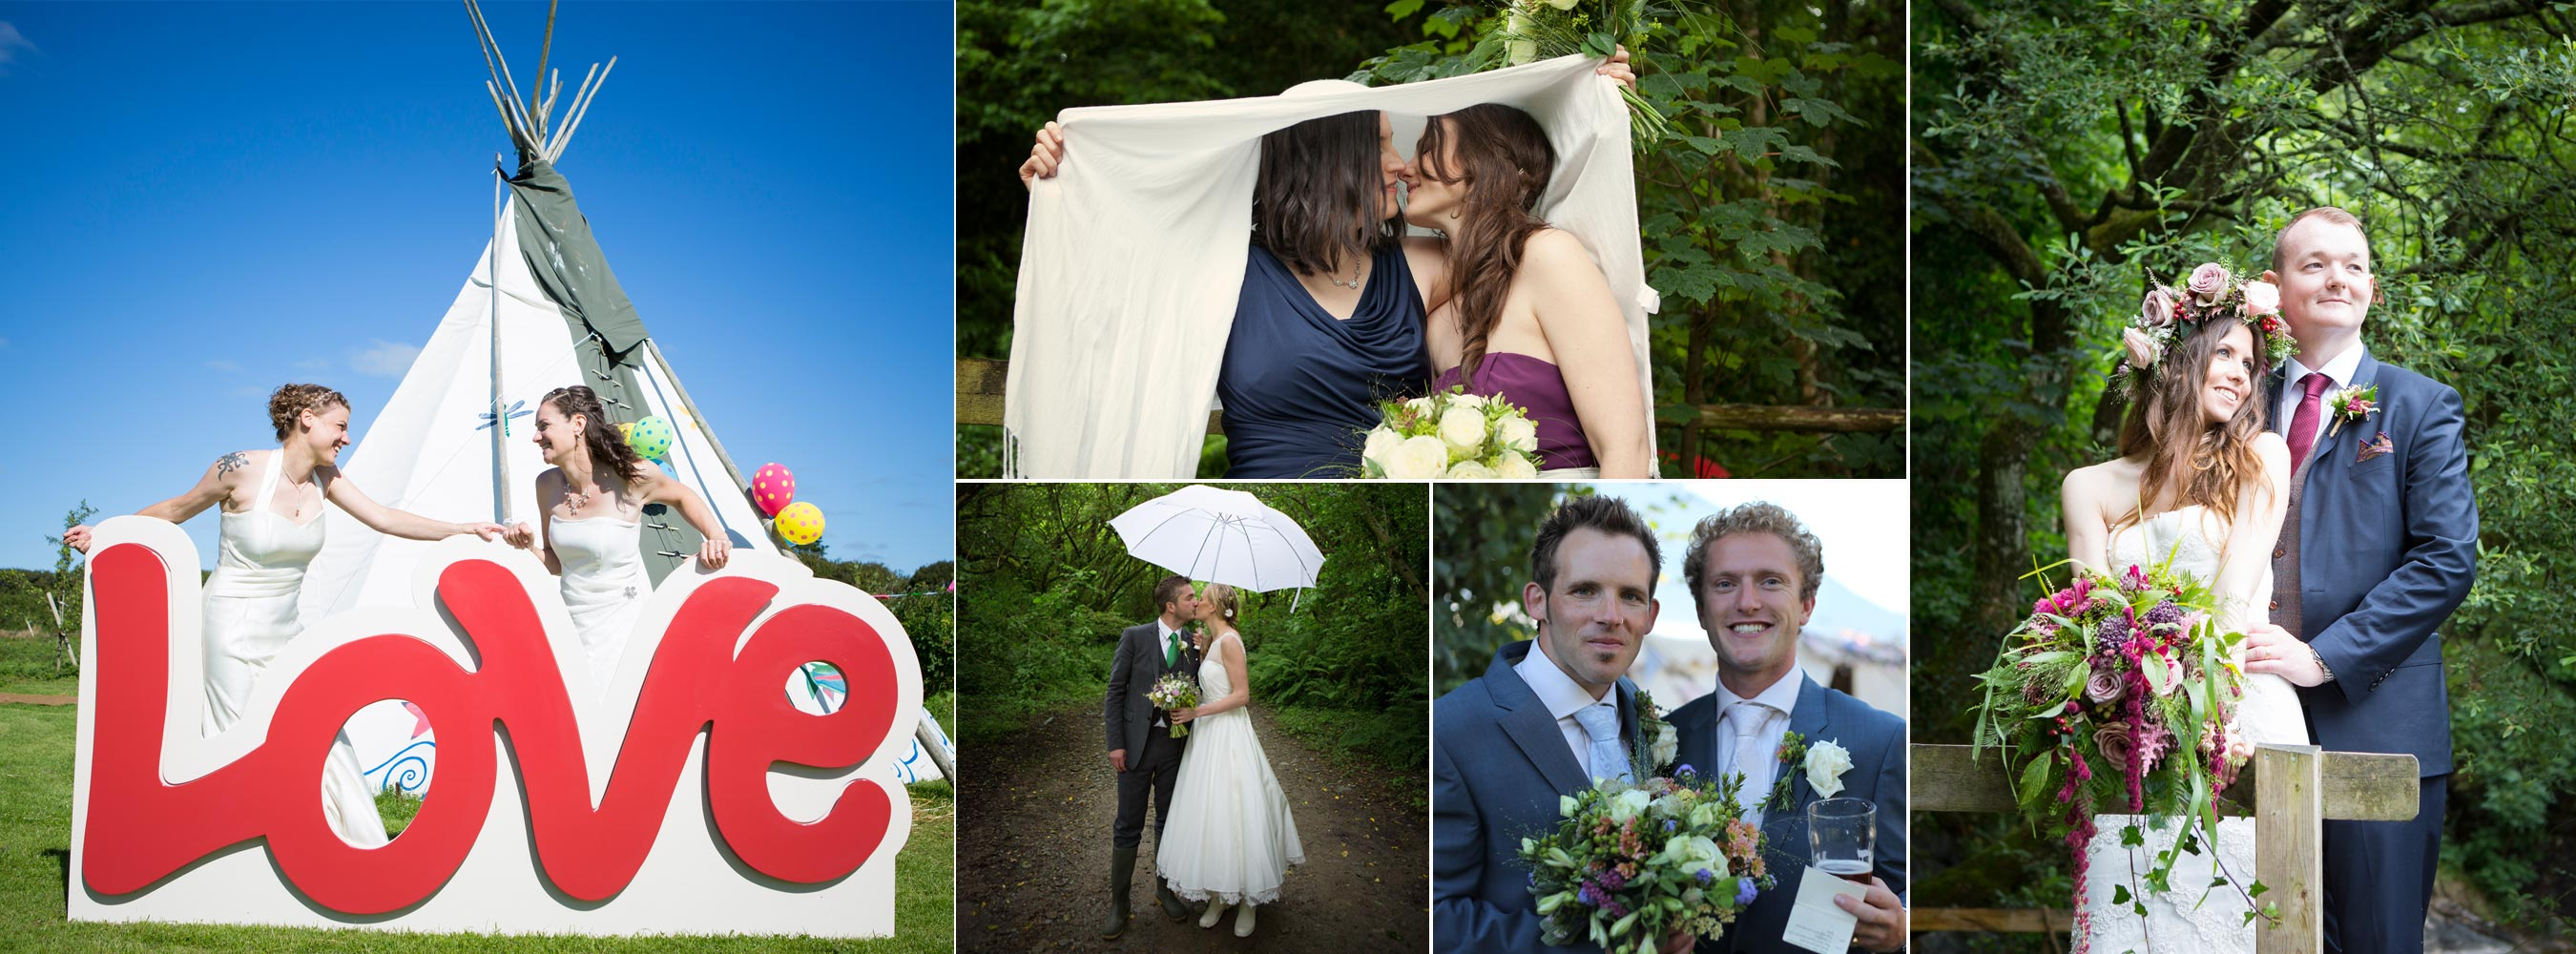 Couples Woodland Weddings